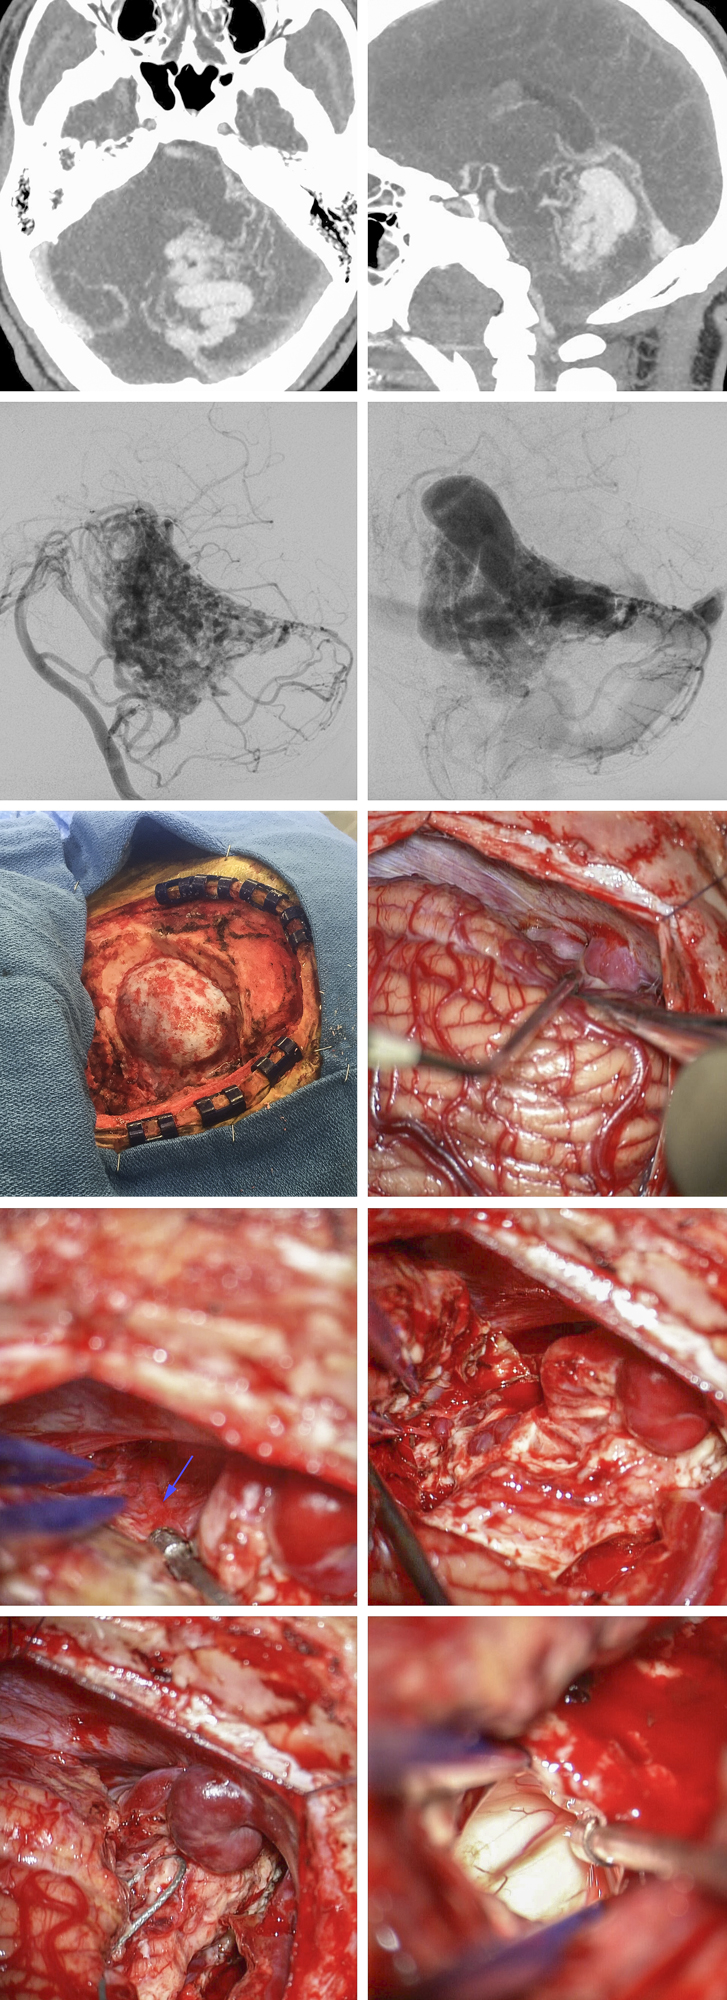 Figure 6: A large tentorial AVM and the associated intraoperative findings are included. The first two rows demonstrate the angioarchitecture of the malformation. The patient was placed in the lateral position and a generous unilateral suboccipital craniotomy was completed. The large hemispheric arterialized draining vein was identified and protected (second row). The SCA feedings vessels (arrow), just behind the draining vein, were identified and coagulated; the nidus was then circumferentially isolated (fourth row). Following disconnection of the nidus, the draining vein appeared dark and therefore was sacrificed. Entry into the fourth ventricle assured complete removal of the periventricular portion of the malformation (last row).